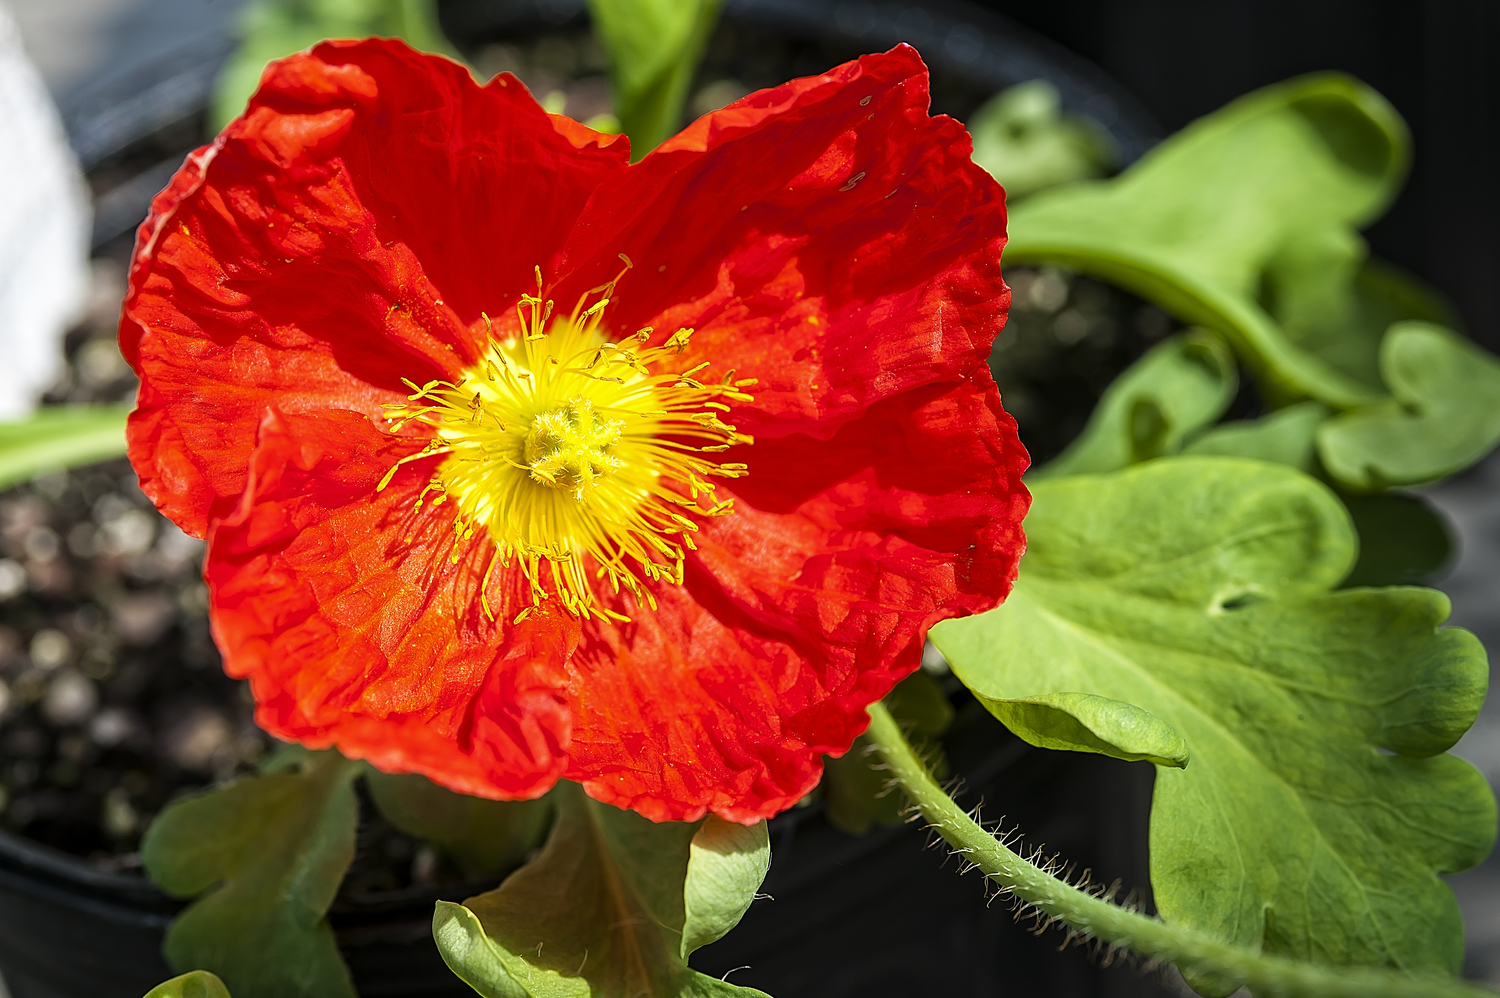 The greenhouse stanley - How To Protect Your Less Hardy Plants During A Mid To Late Spring Frost